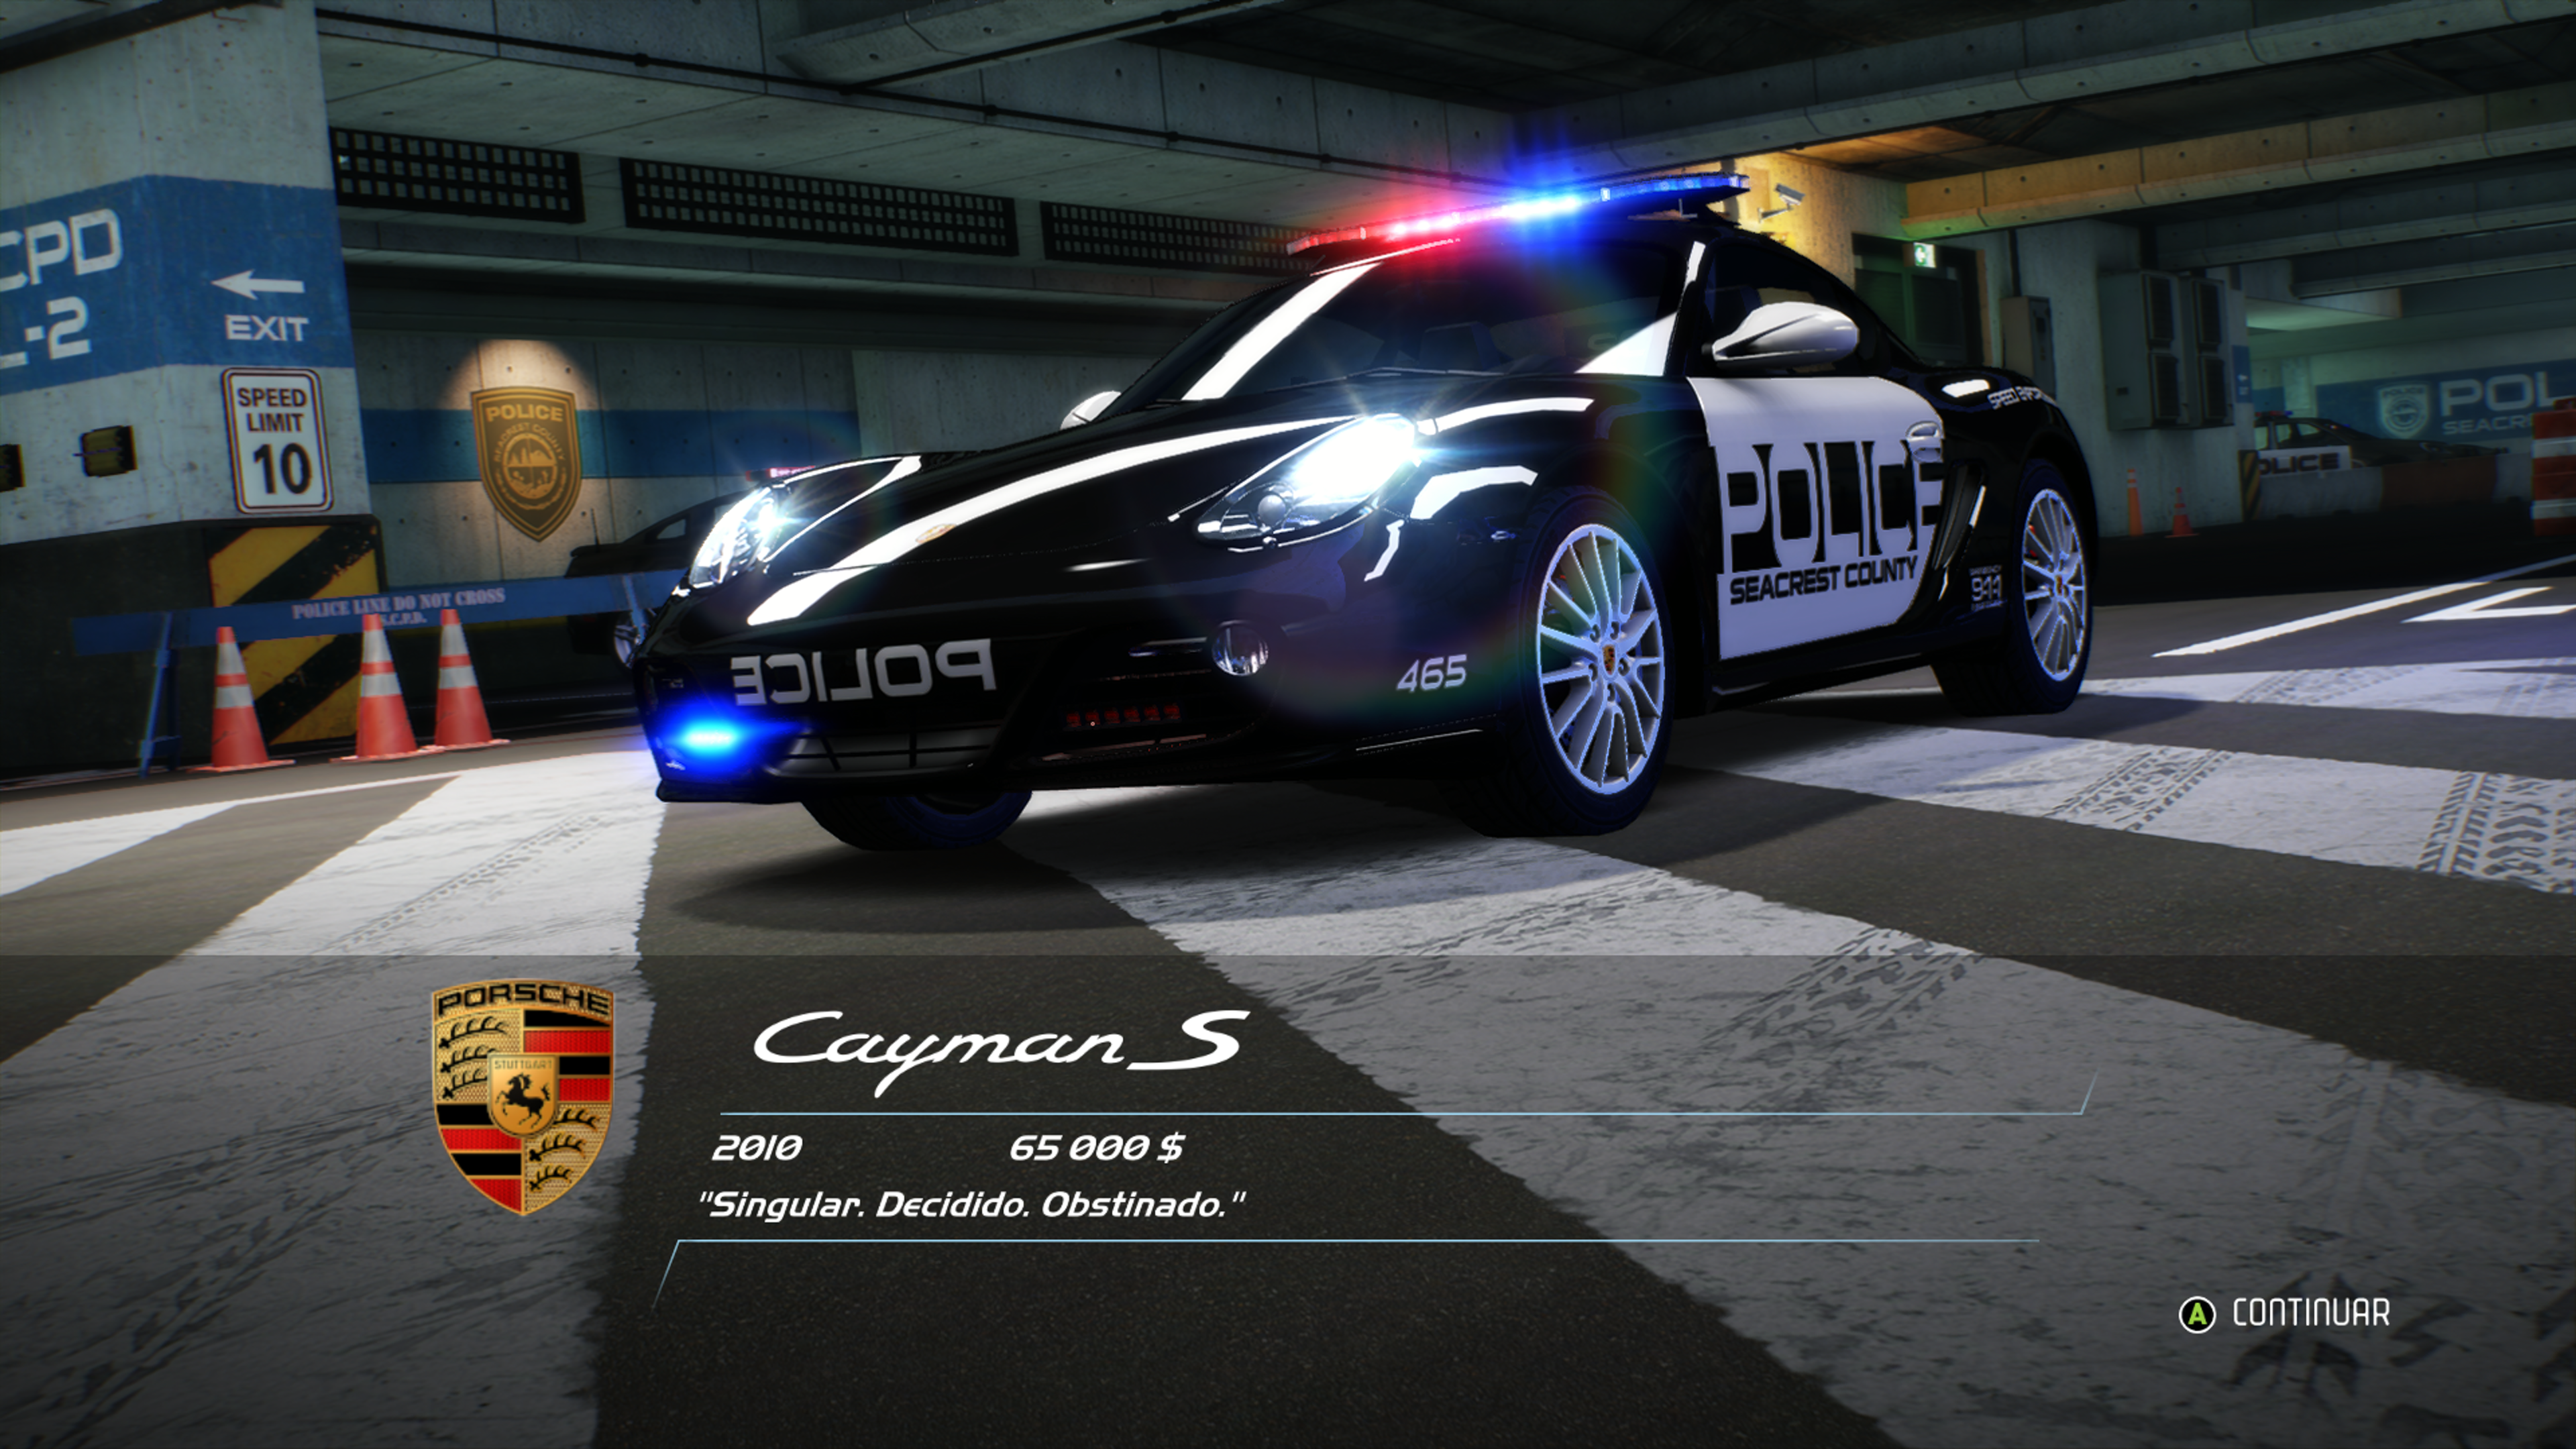 pc43vmxlt7_Need For Speed™ Hot Pursuit Remastered 2020-11-21 23-39-24.png